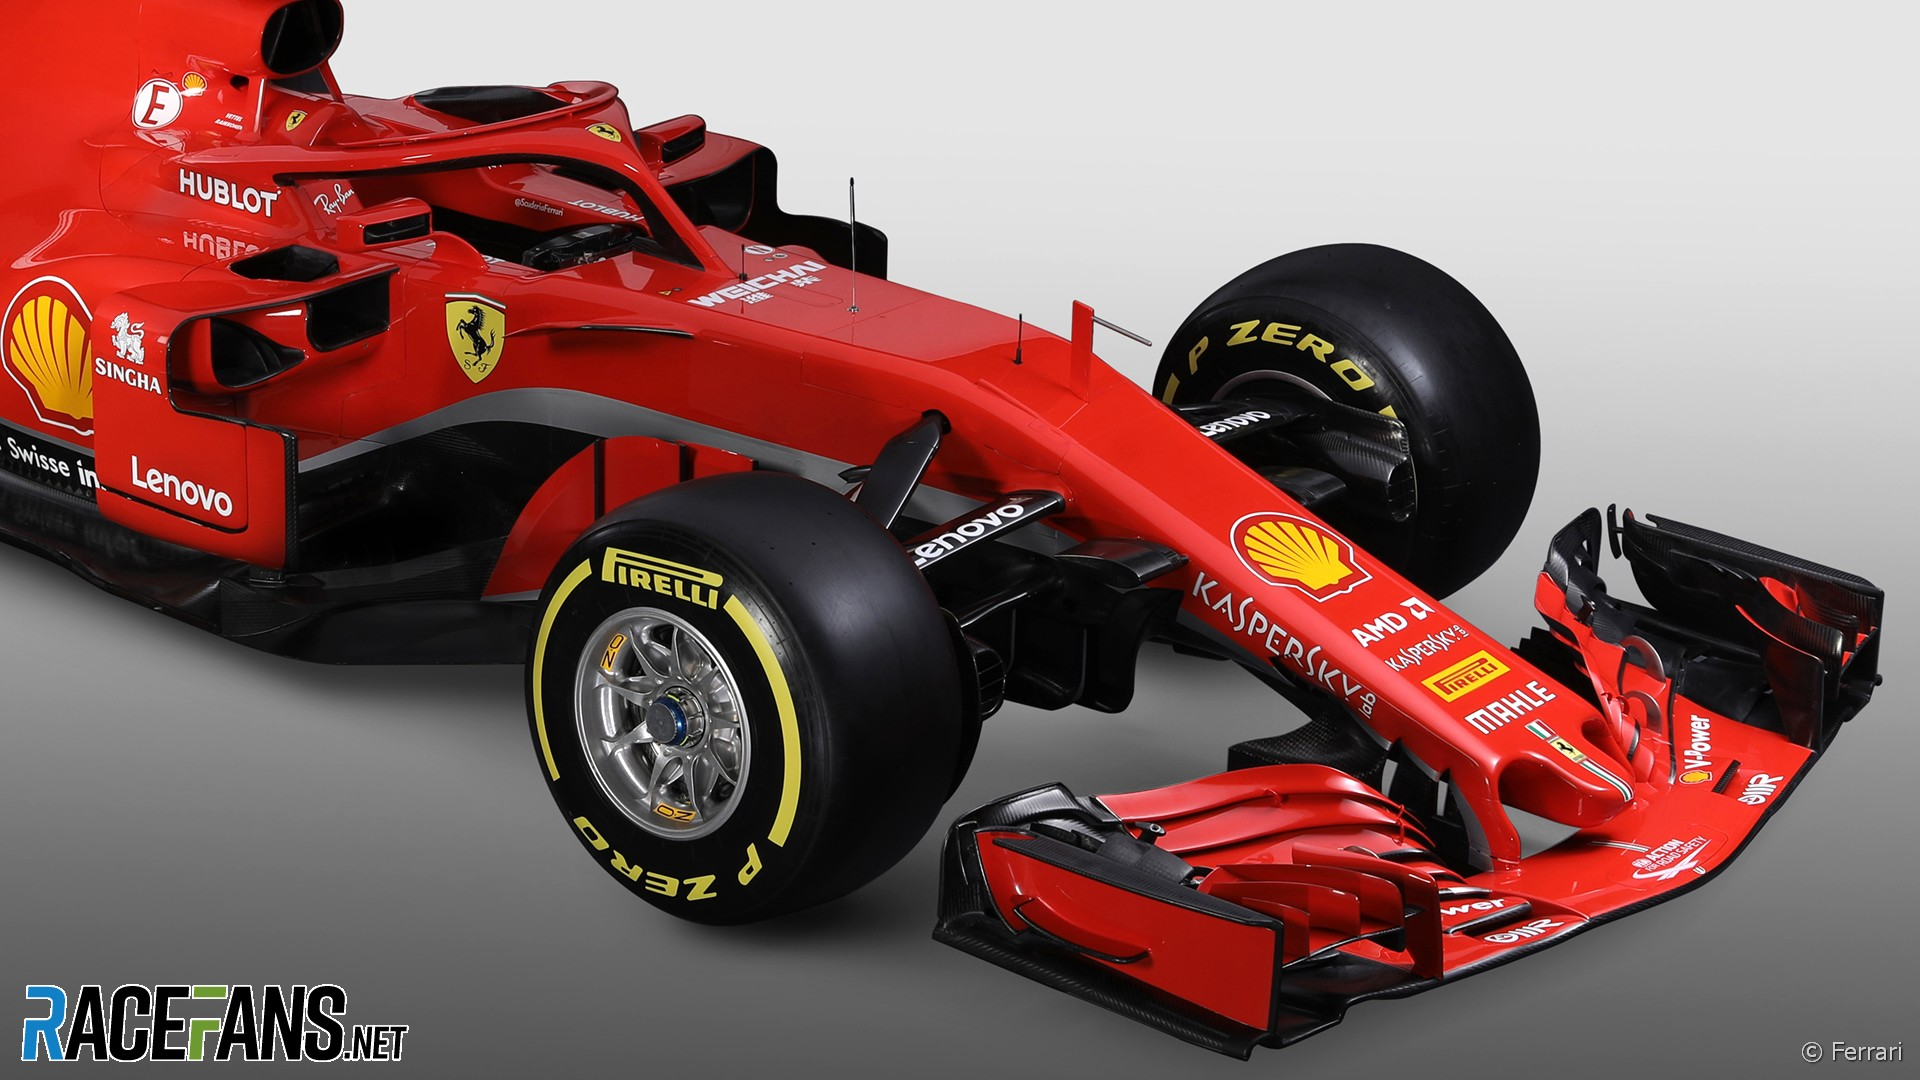 ferrari sf71h 2018 racefans. Black Bedroom Furniture Sets. Home Design Ideas